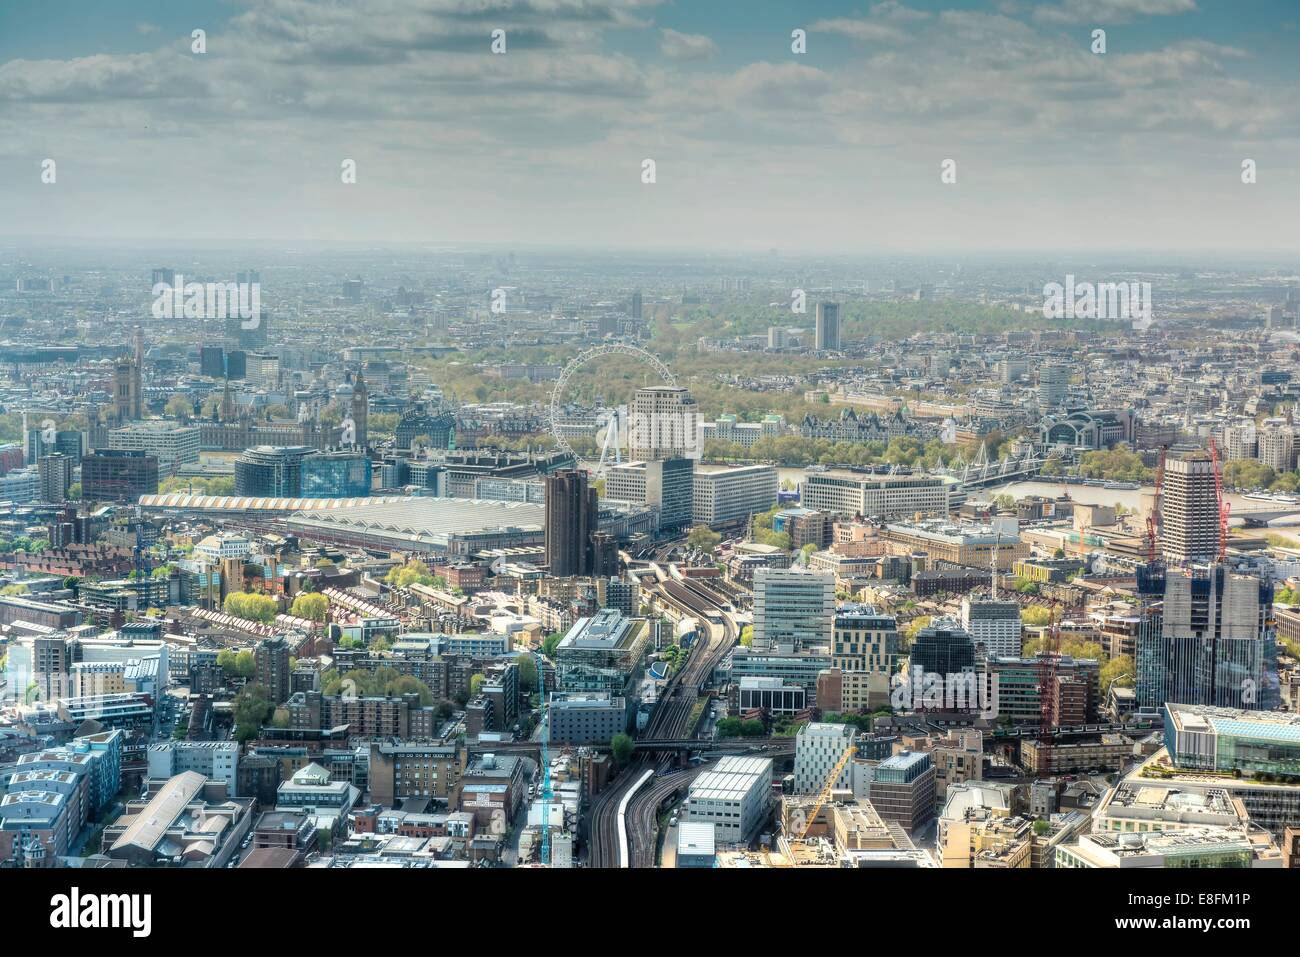 United Kingdom, England, London, Cityscape - Stock Image